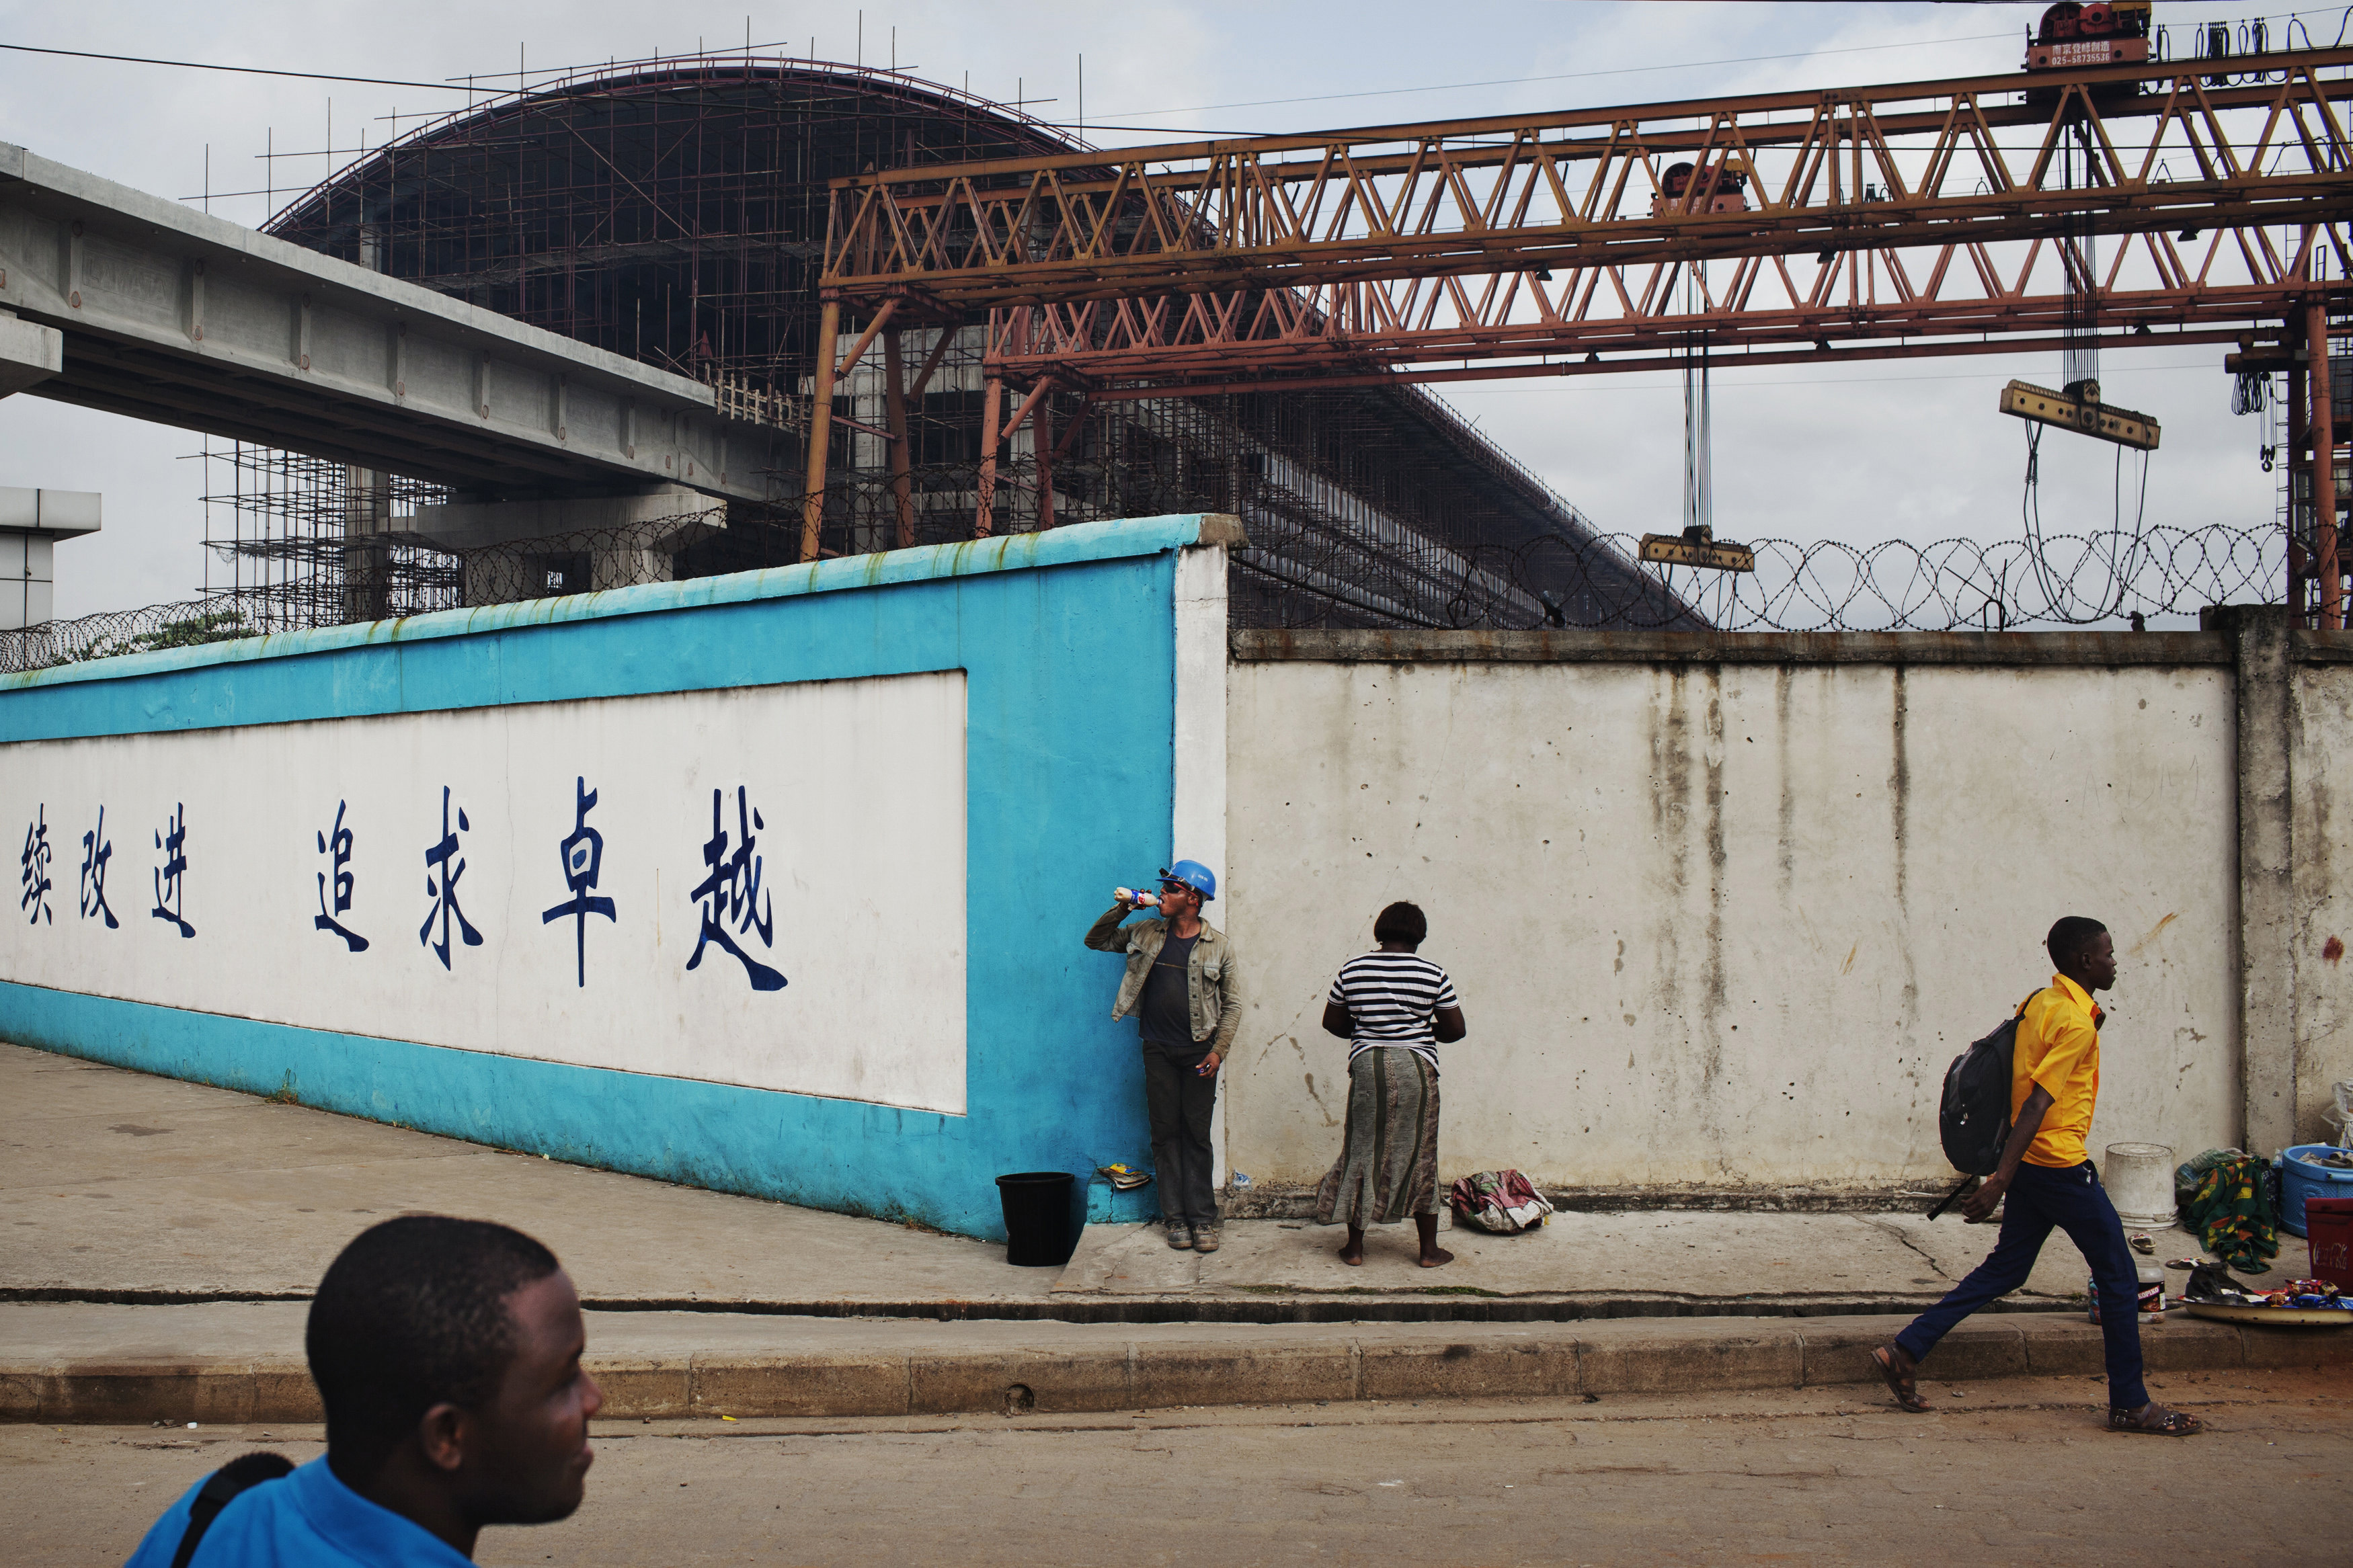 Pedestrians pass by a construction site of Lagos Rail Mass Transit system in Lagos in 2013.